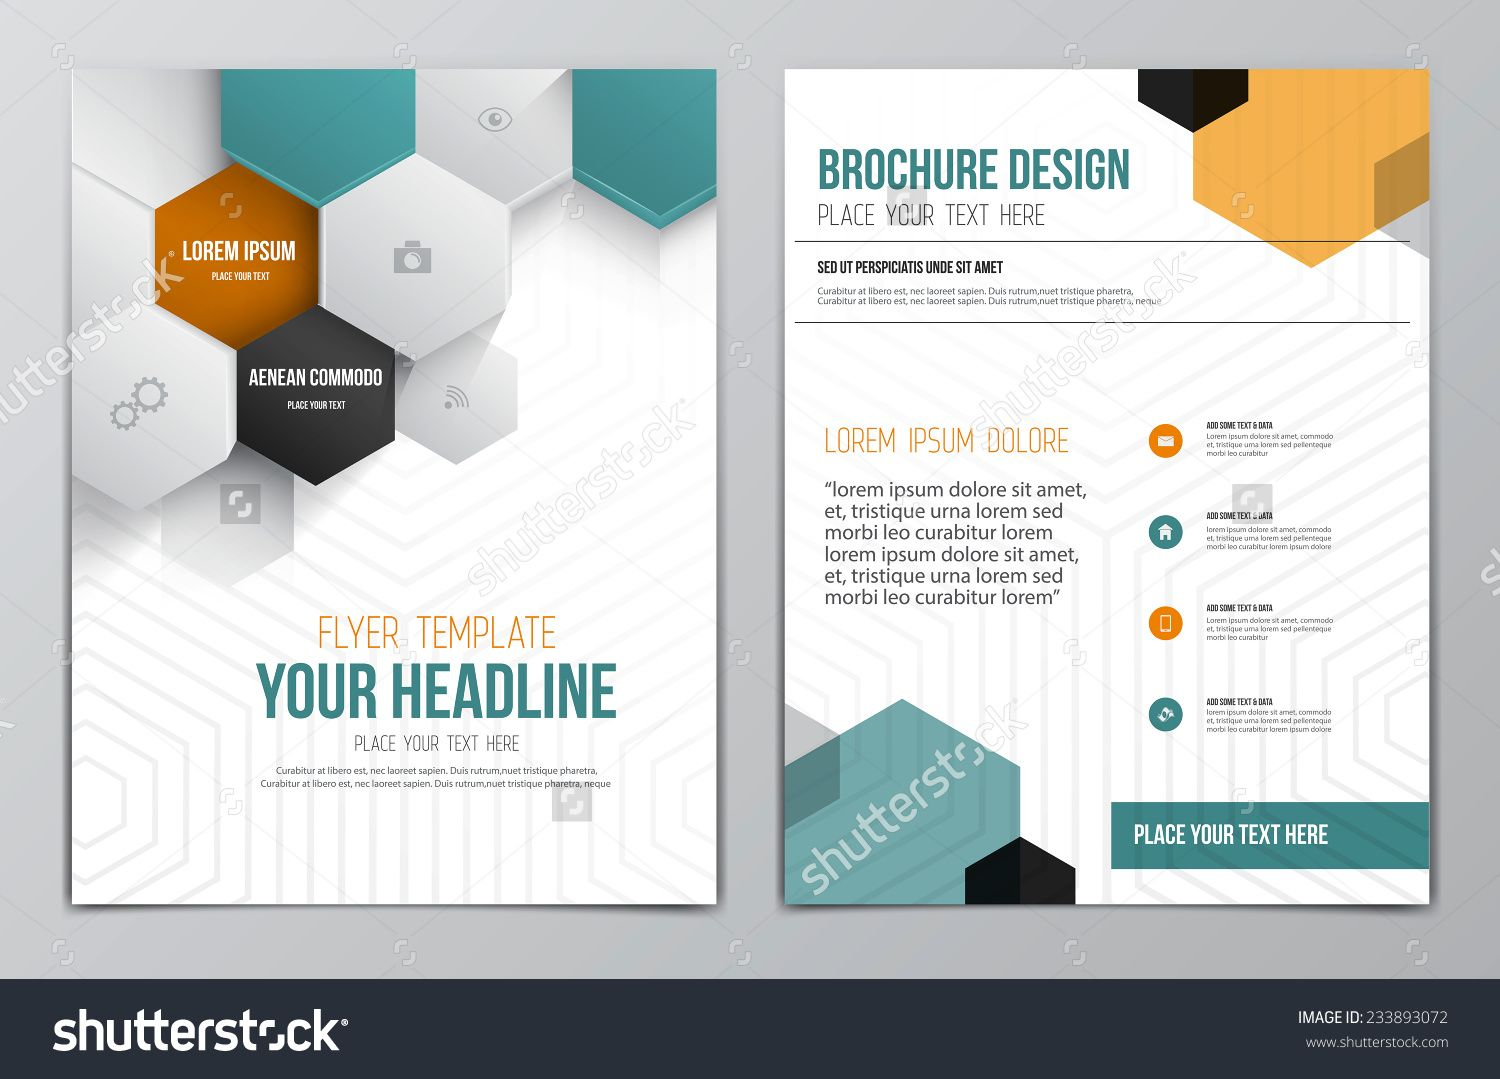 brochure online template - brochure design template geometric shapes abstract